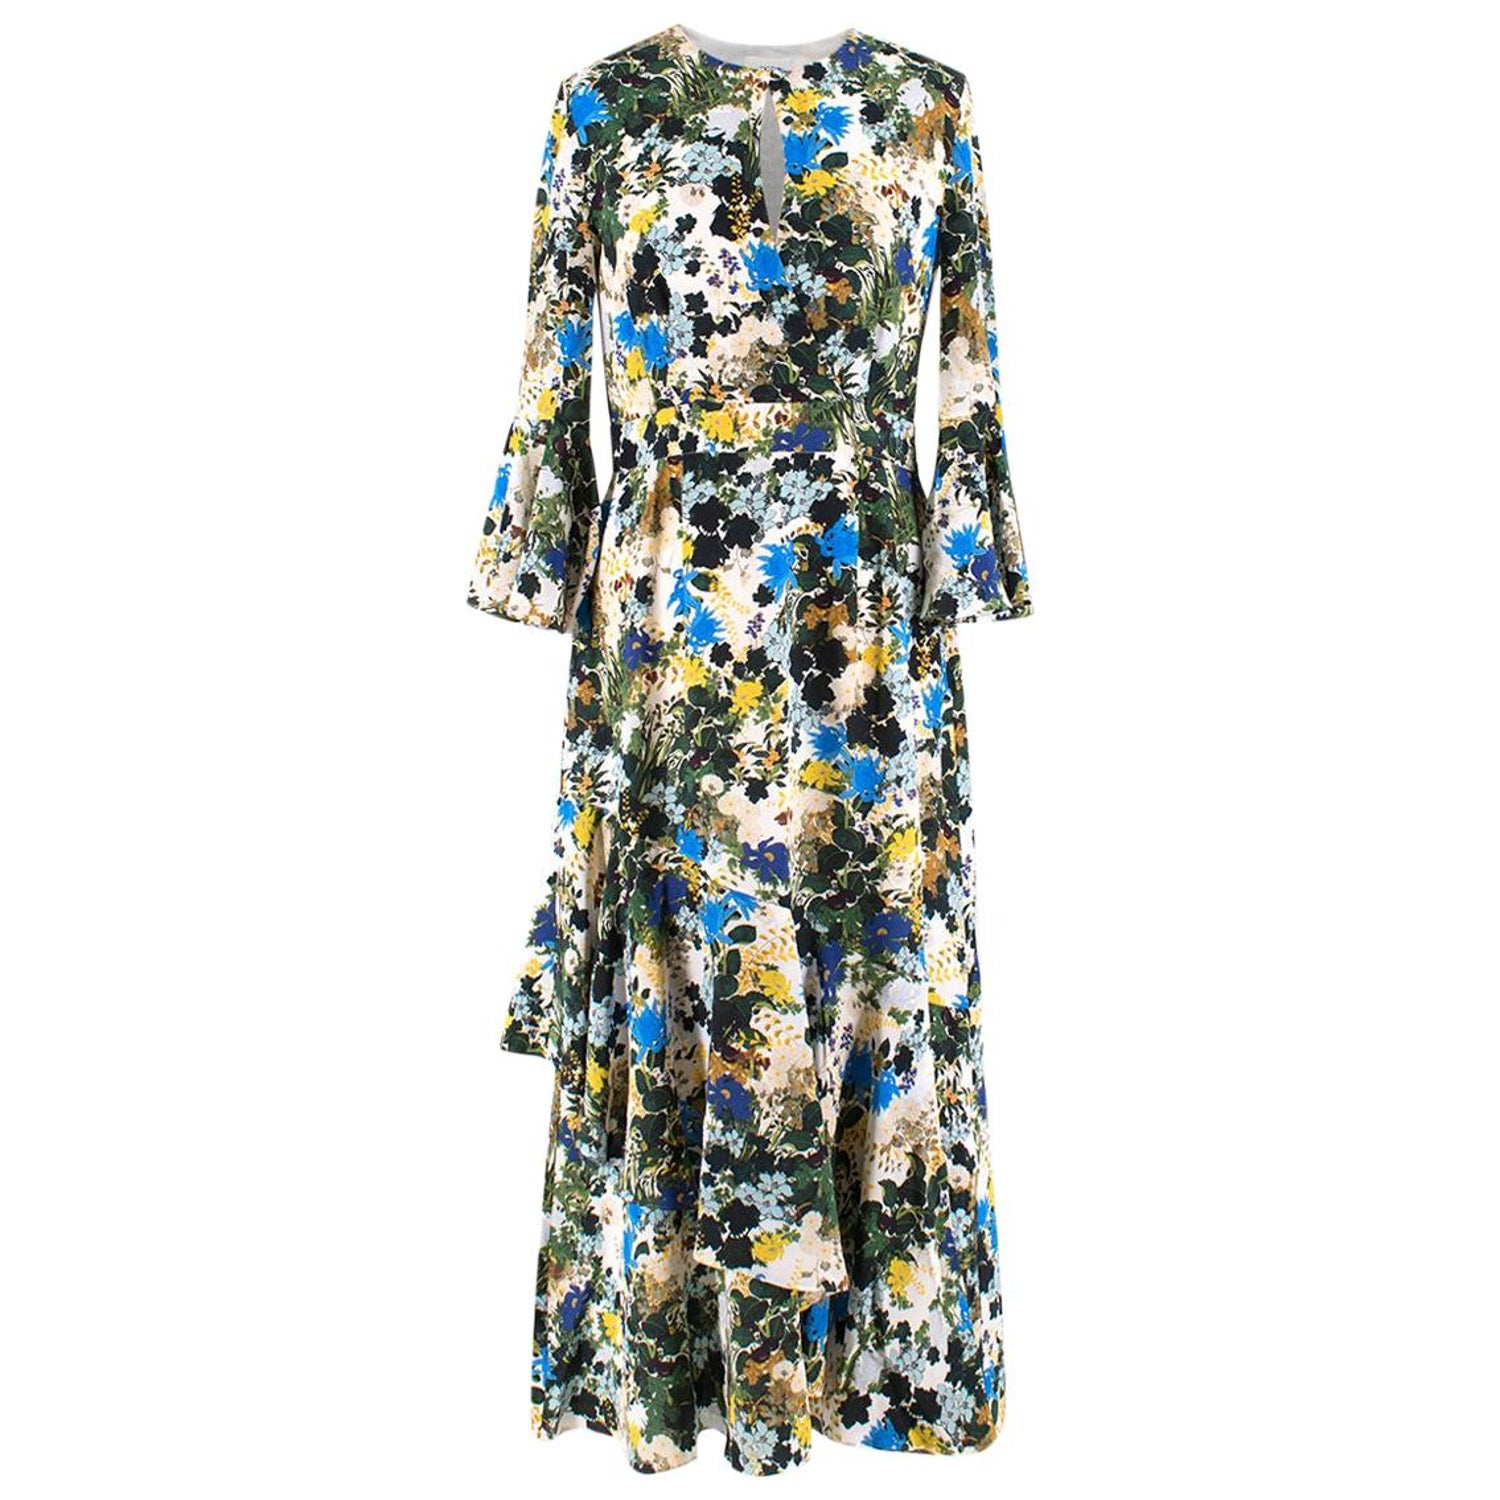 1d7b6e56da34 Erdem Florence Mariko Meadow-print silk dress US 6 at 1stdibs